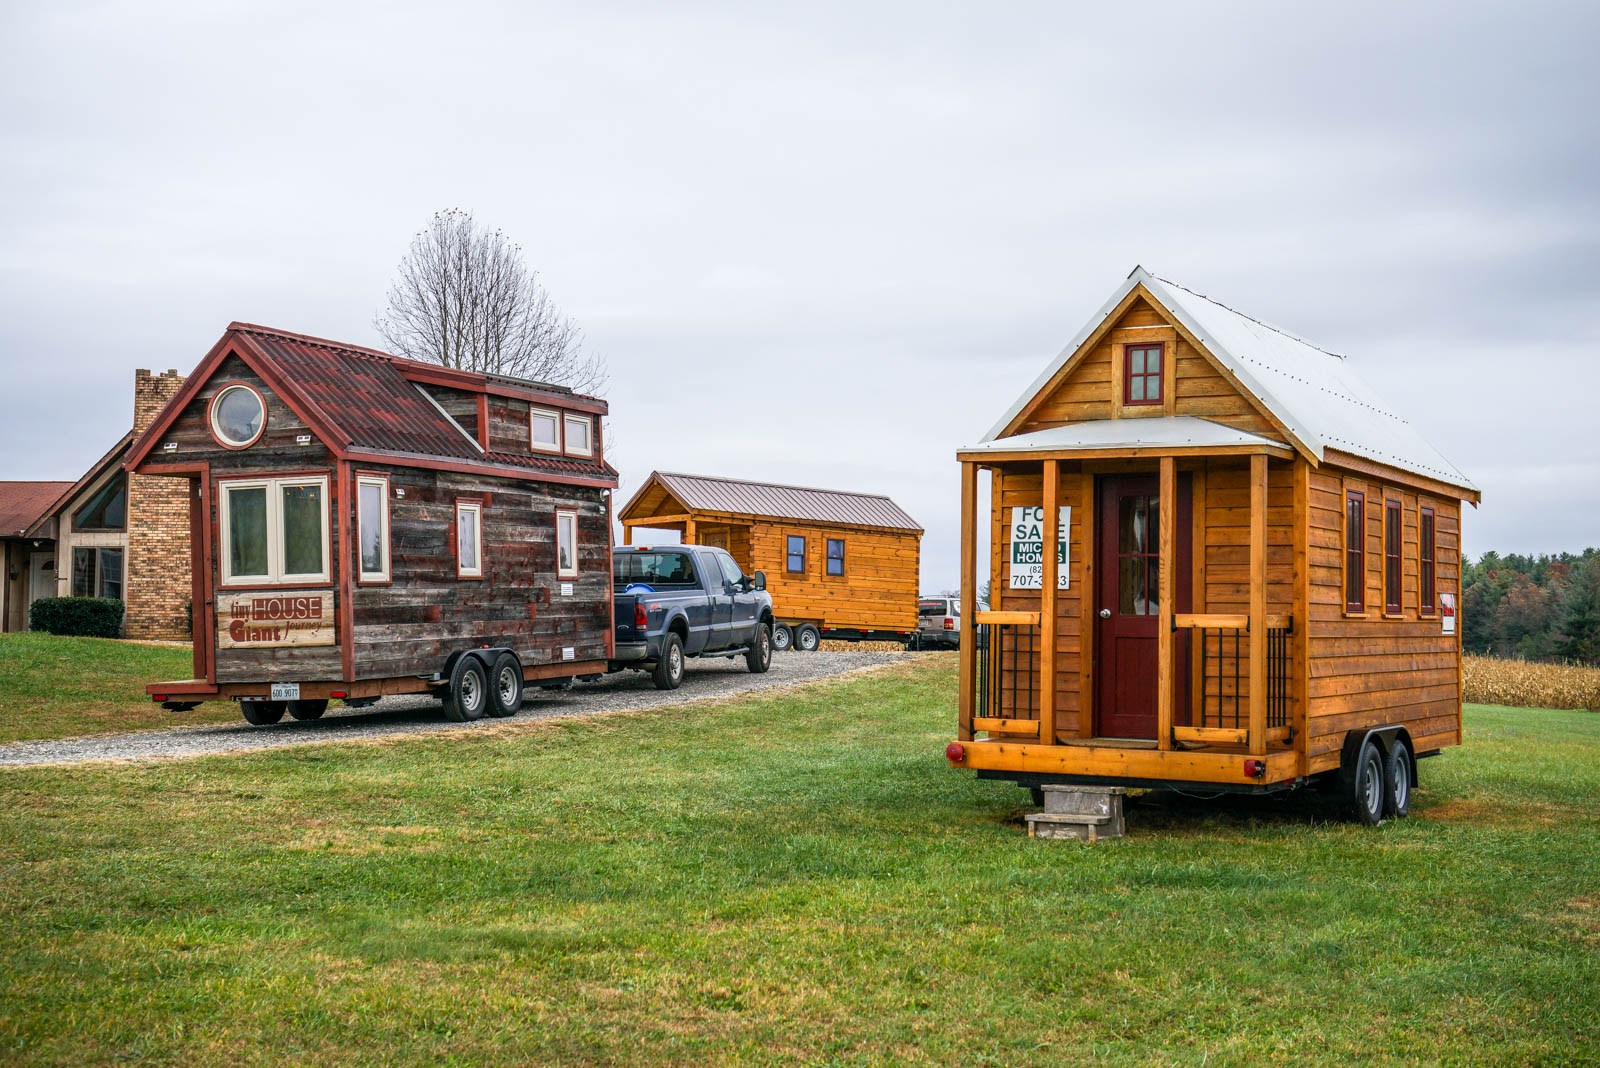 Long Island Tiny Houses, your resource center for tiny homes. From legal issues to supplies & manufacturers. From Long Island's East End to NYC and beyond.